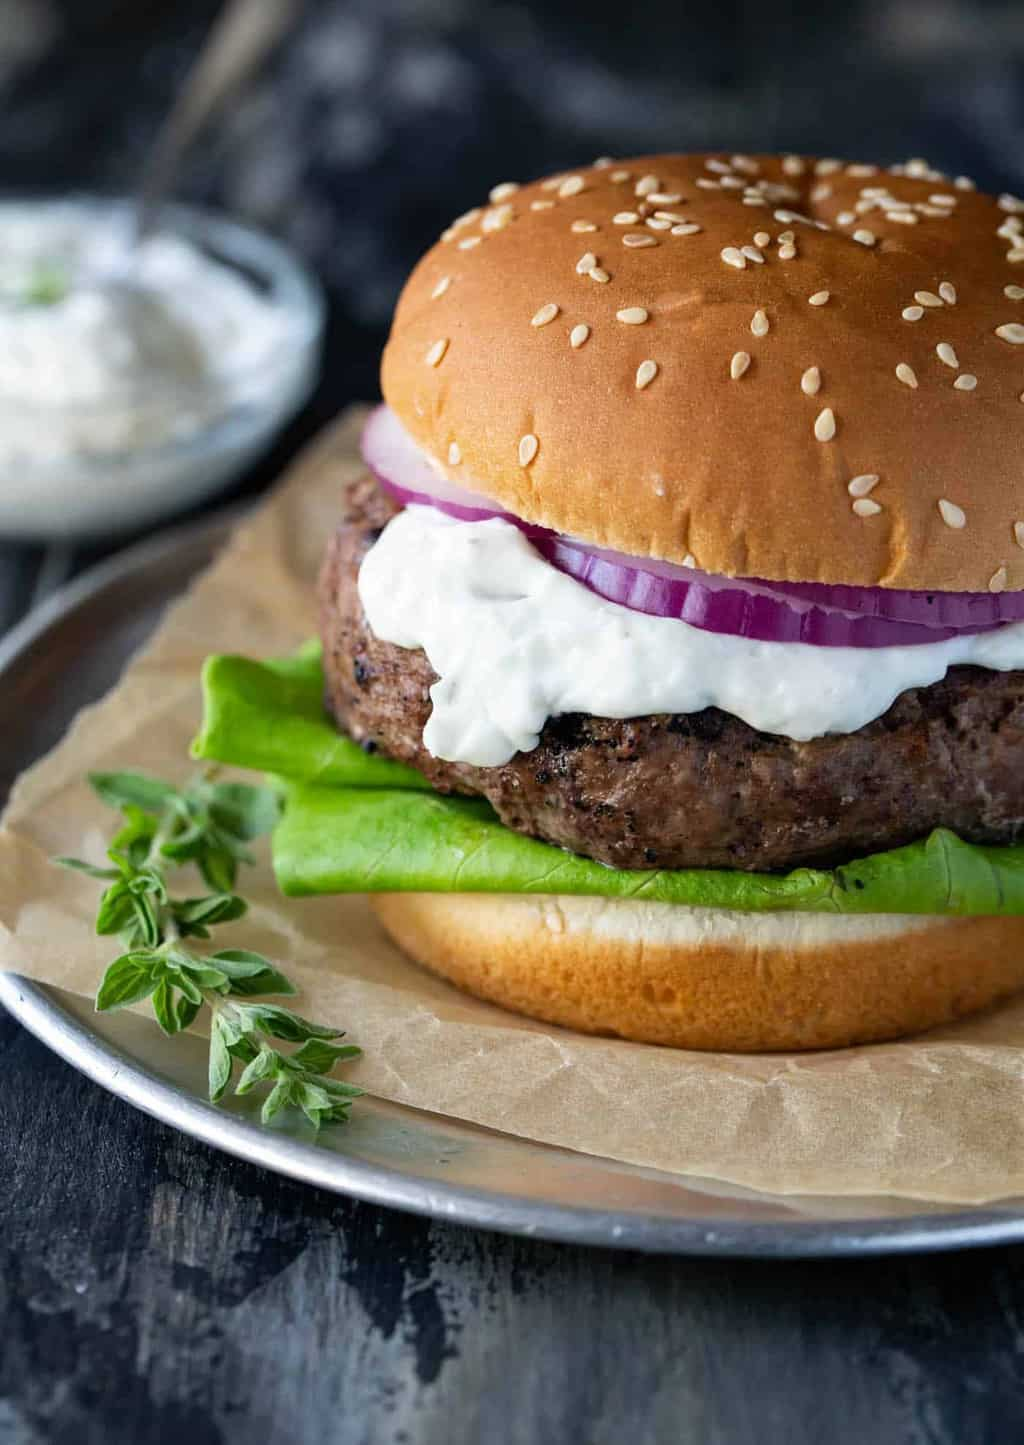 Greek Lamb Burgers with Goat Cheese and Tzatziki Sauce garnished with lettuce, red onion and fresh oregano on a sesame seed bun.